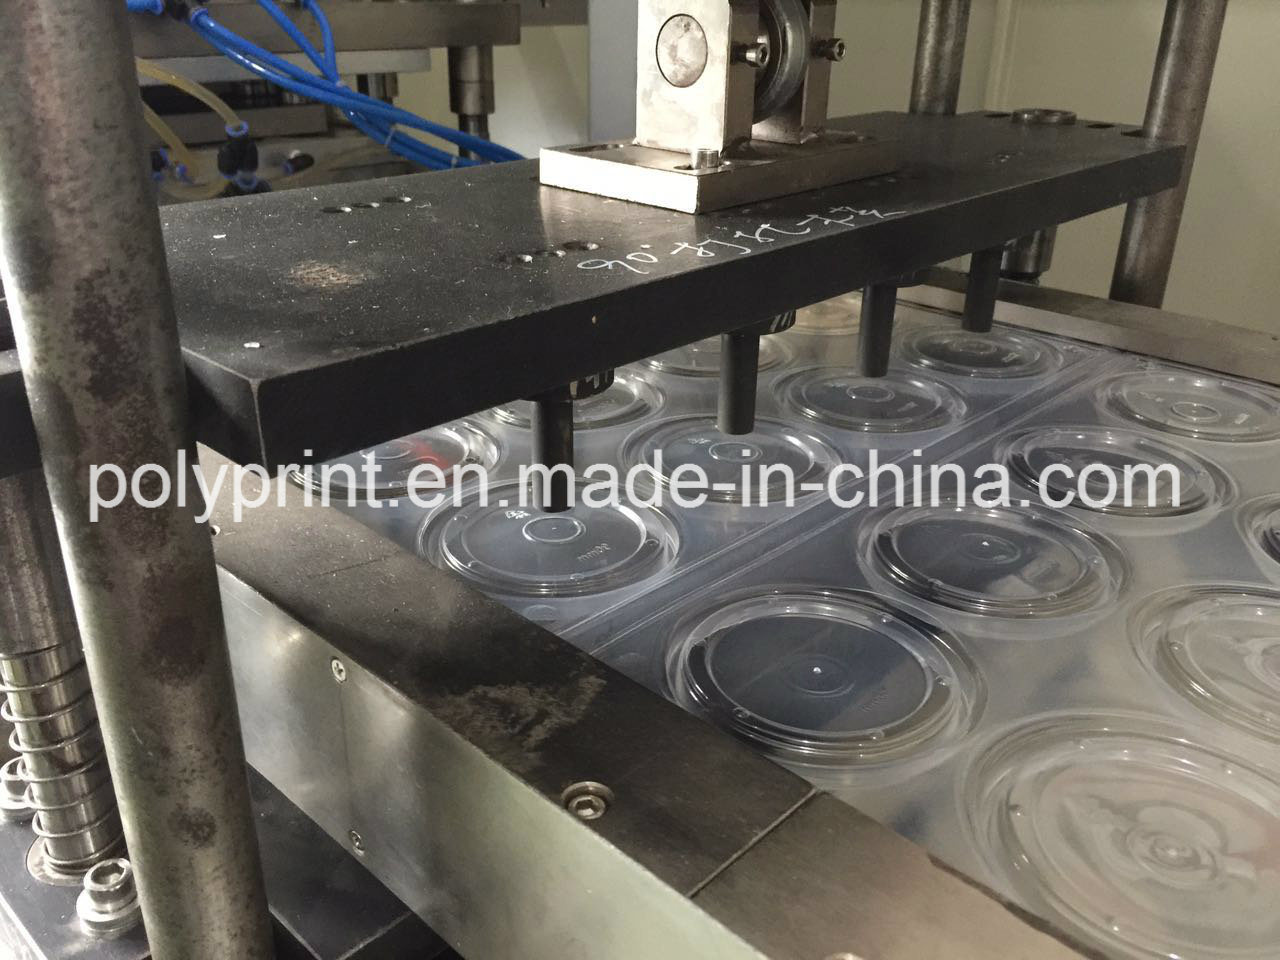 Plastic Egg Tray, Lid, Clamshell Box Forming Machine Thermforming Machine